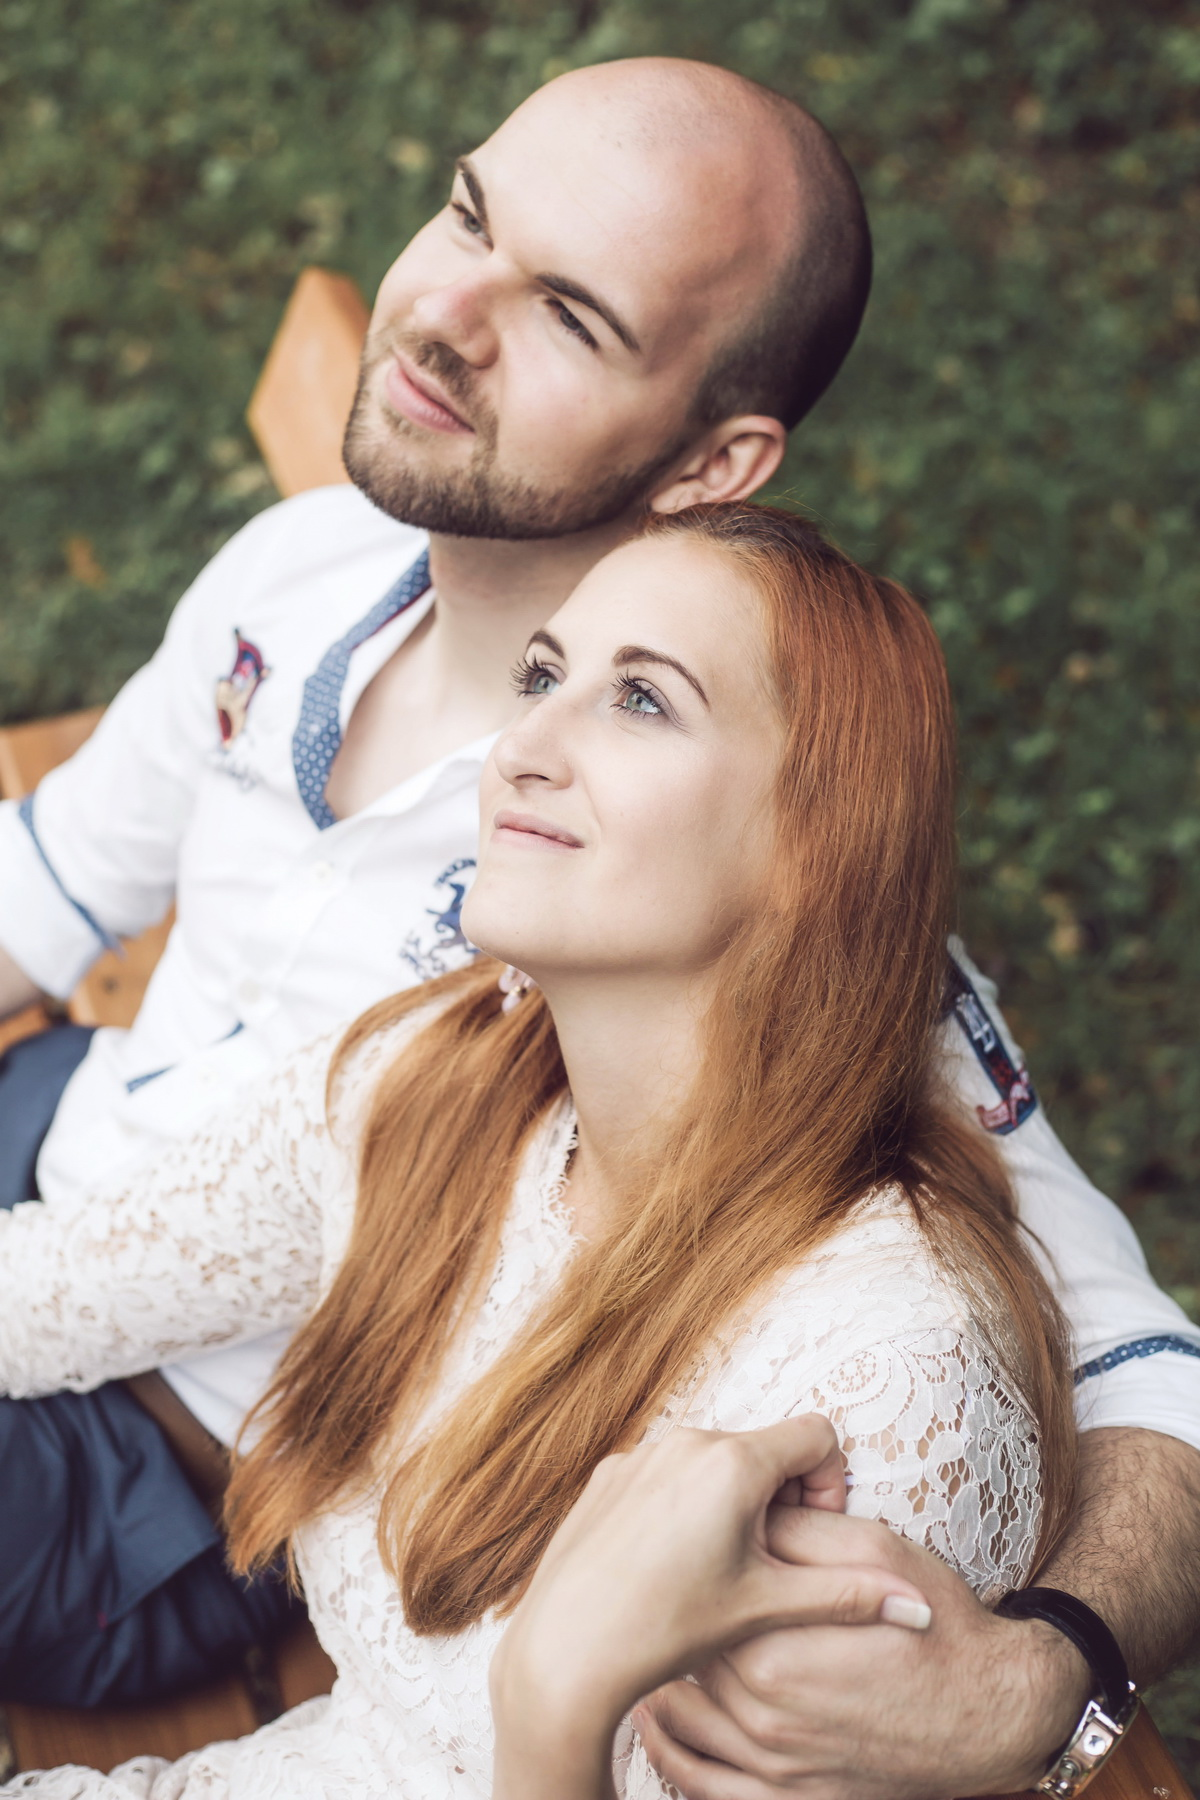 Claudia Sittig Photography - Couple - Love - Theresa and Thomas - 43